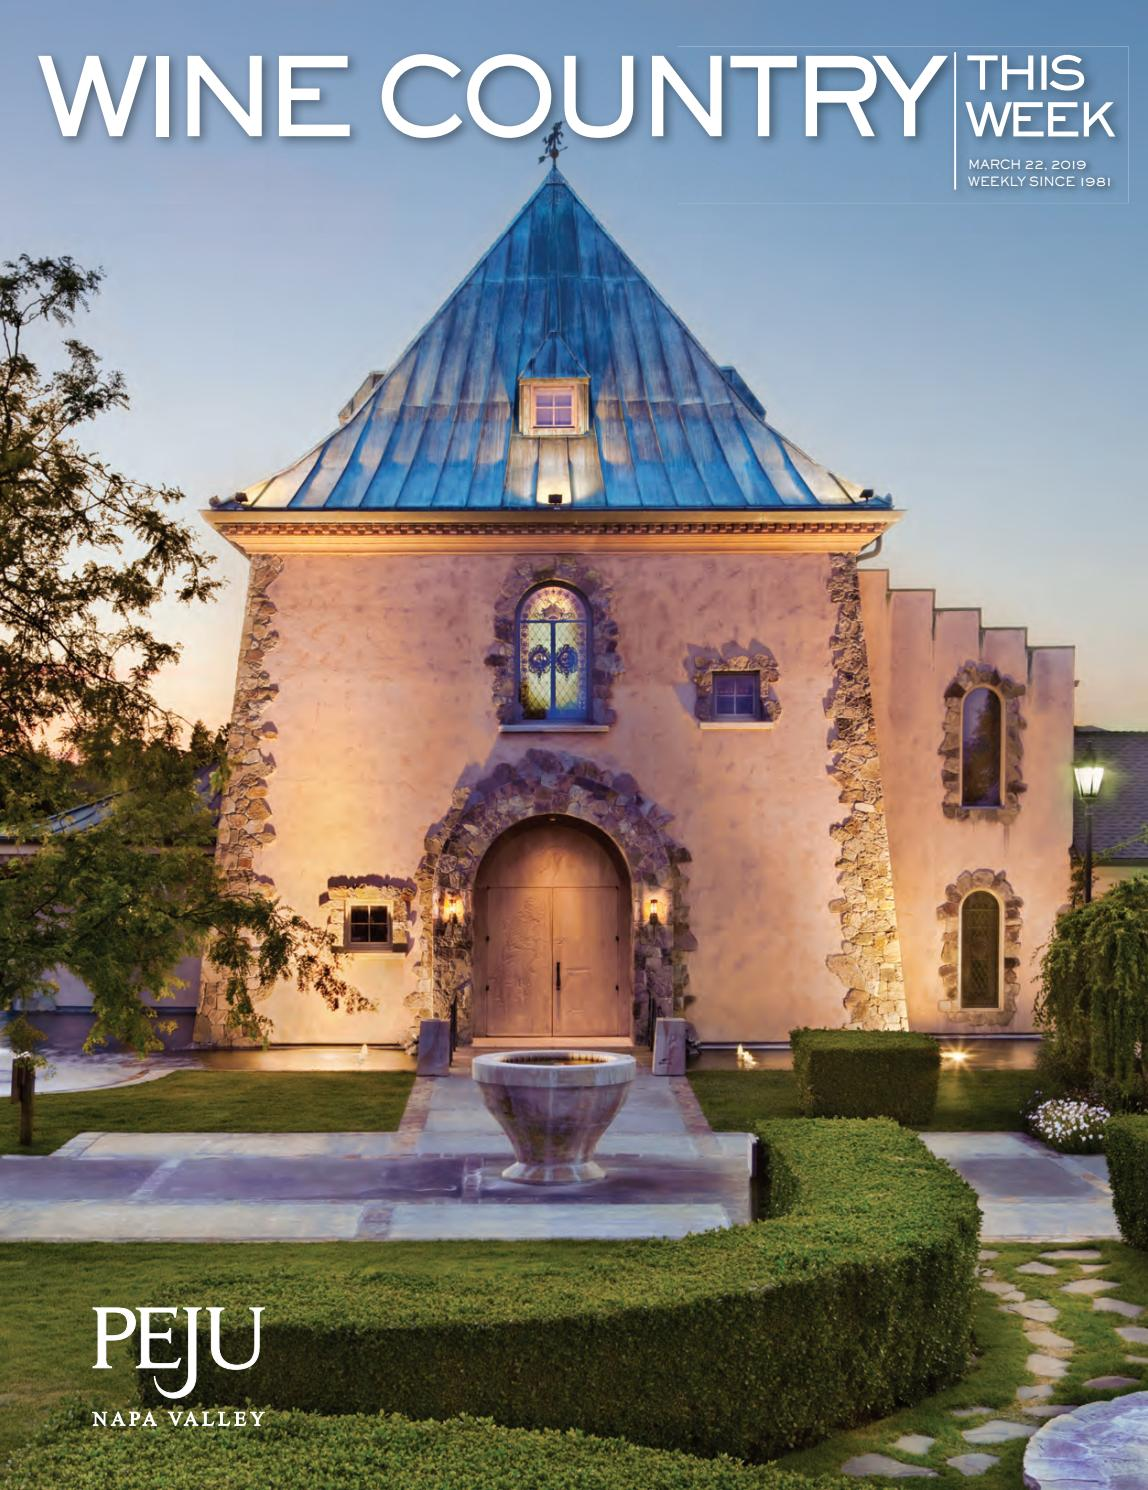 110 Camino Oruga Napa Ca Wctw032219 By Brehm Communications Issuu